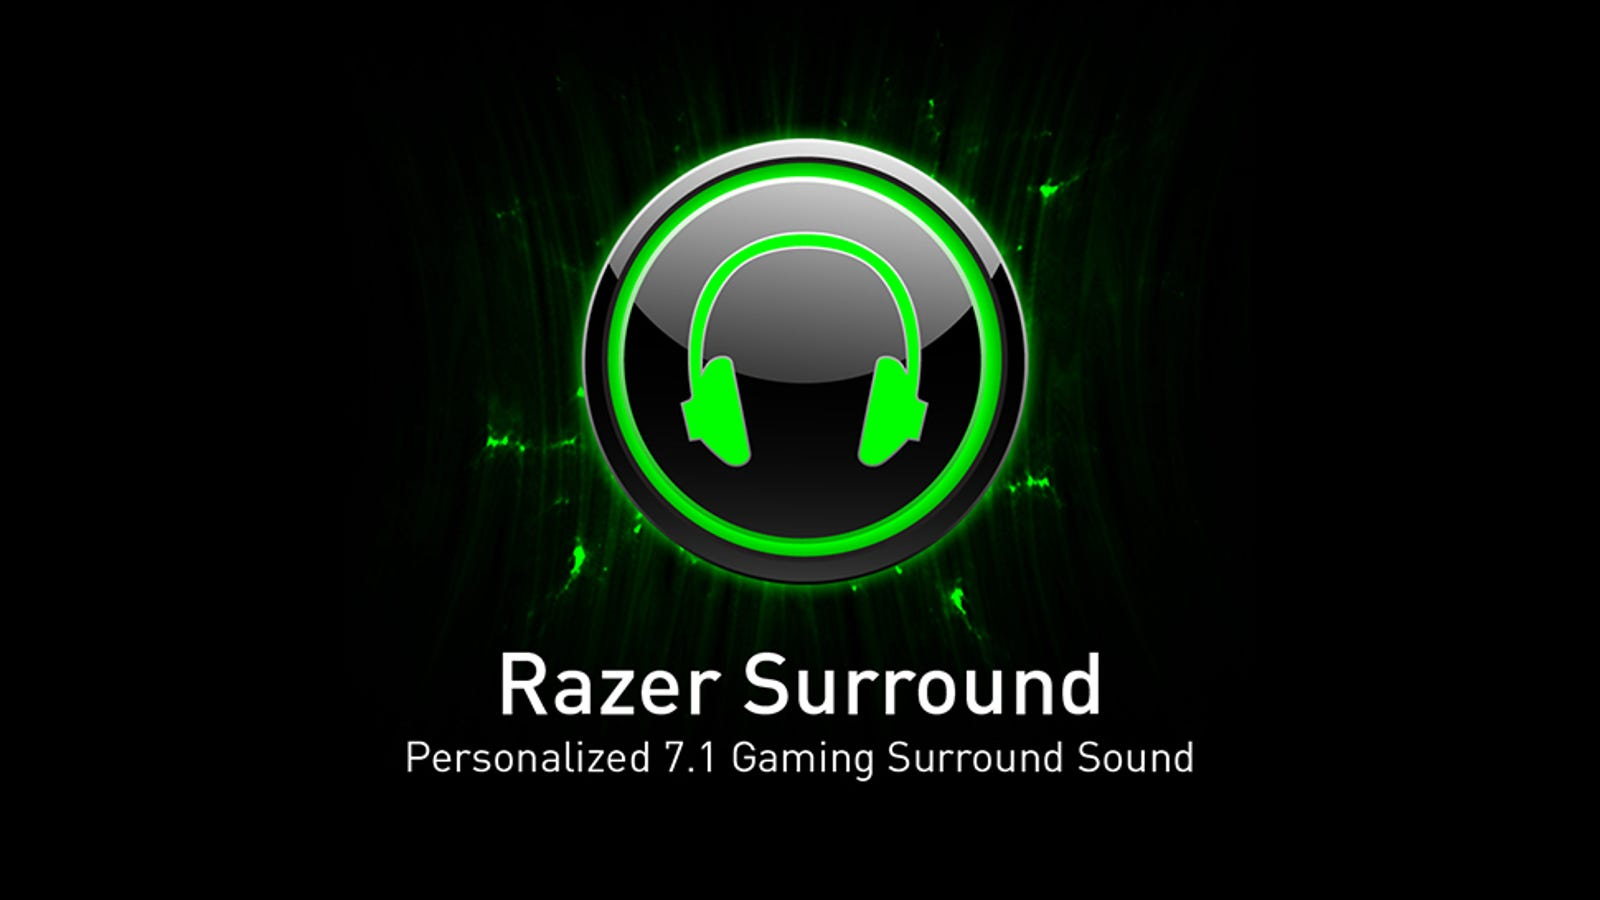 wireless gaming headphones no microphone - Razer's Surround Software Could Turn Regular Headphones Into 7.1 Cans